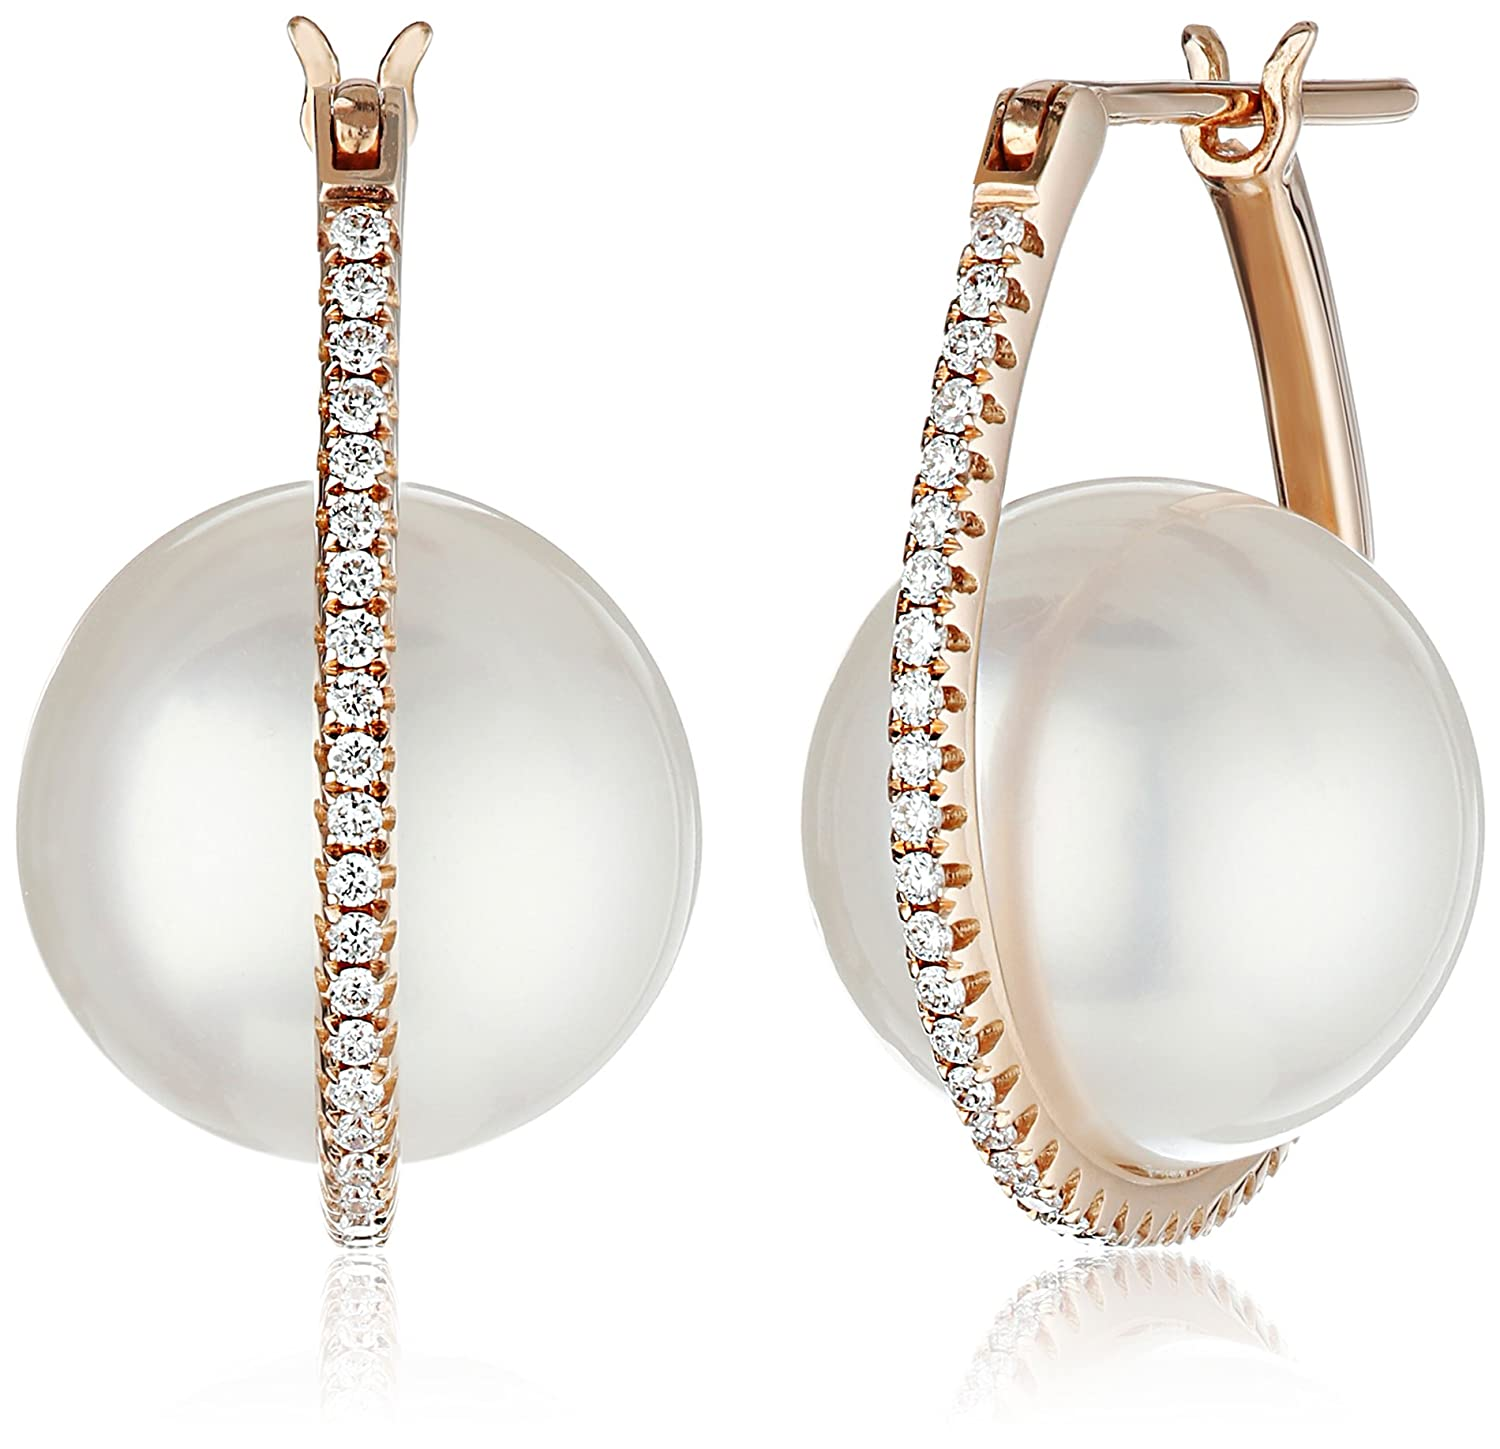 elizabeth with pearl products nirvana pearls harlequin buenaventura earrings ruby